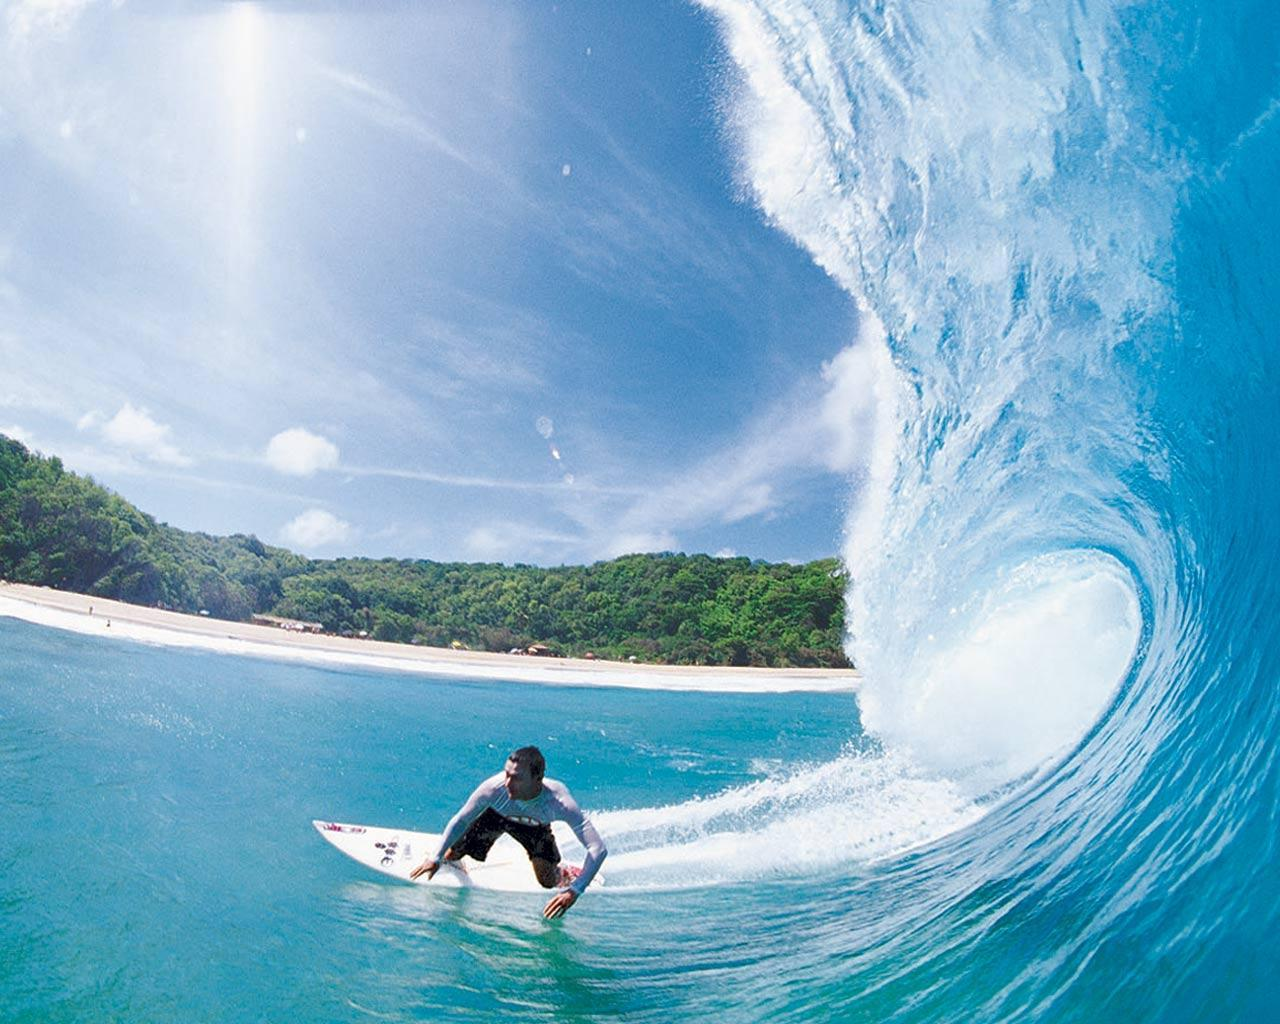 HD Surfing Wallpapers 1280x1024